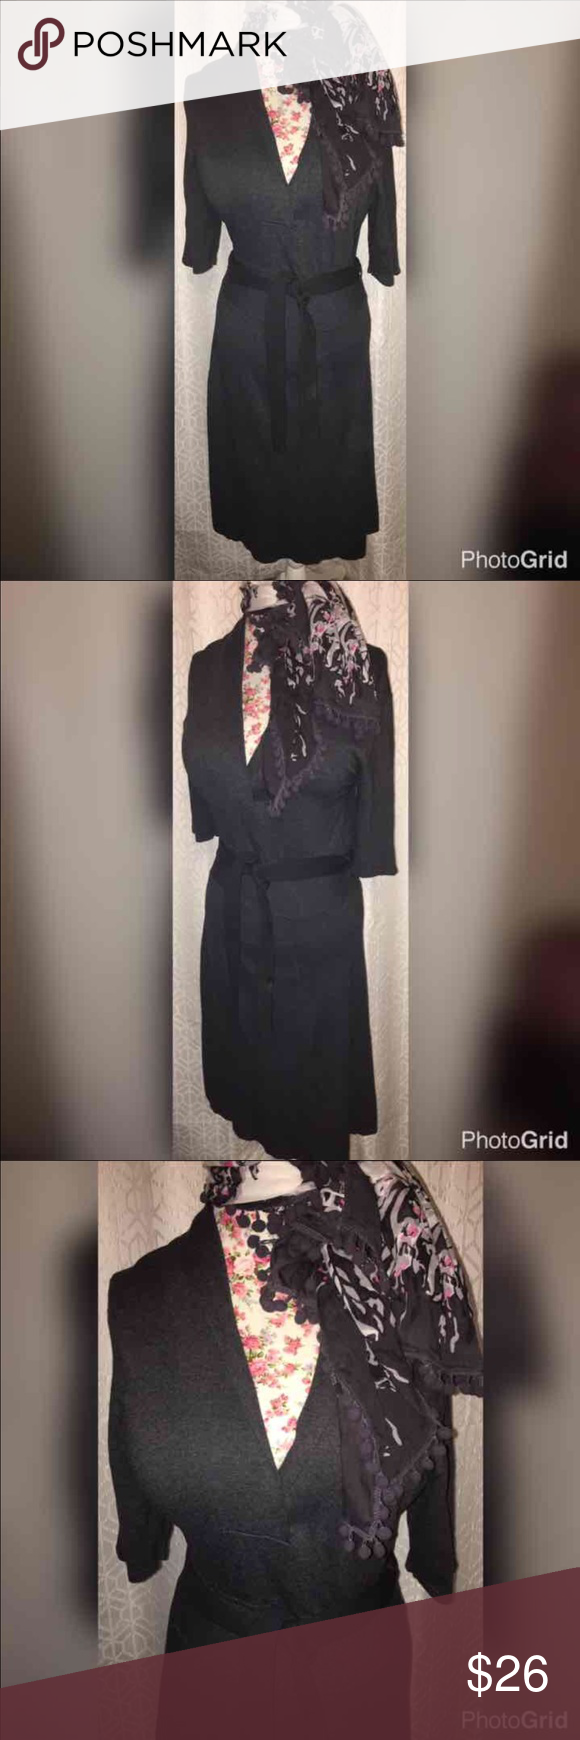 "NWOT RALPH LAUREN SWEATER FAUX WRAP/SCARF SZ LG HUGE SALE!! THIS BEAUTIFUL DARK GREY DRESS IS MADE BY LAUREN RALPH LAUREN! COMES WITH ATTACHED BELT. IT ALSO COMES WITH THE LOVELY POM POM SCARF!  IT IS 20"" ACROSS THE CHEST AND IS 45"" FROM THE CHEST AND IS SOPHISTICATED AND GORGEOUS! IT IS MADE OF 48% VISCOSE, 37% NYLON 15% COTTON! SIMPLY GORGEOUS!! Lauren Ralph Lauren Dresses Midi"